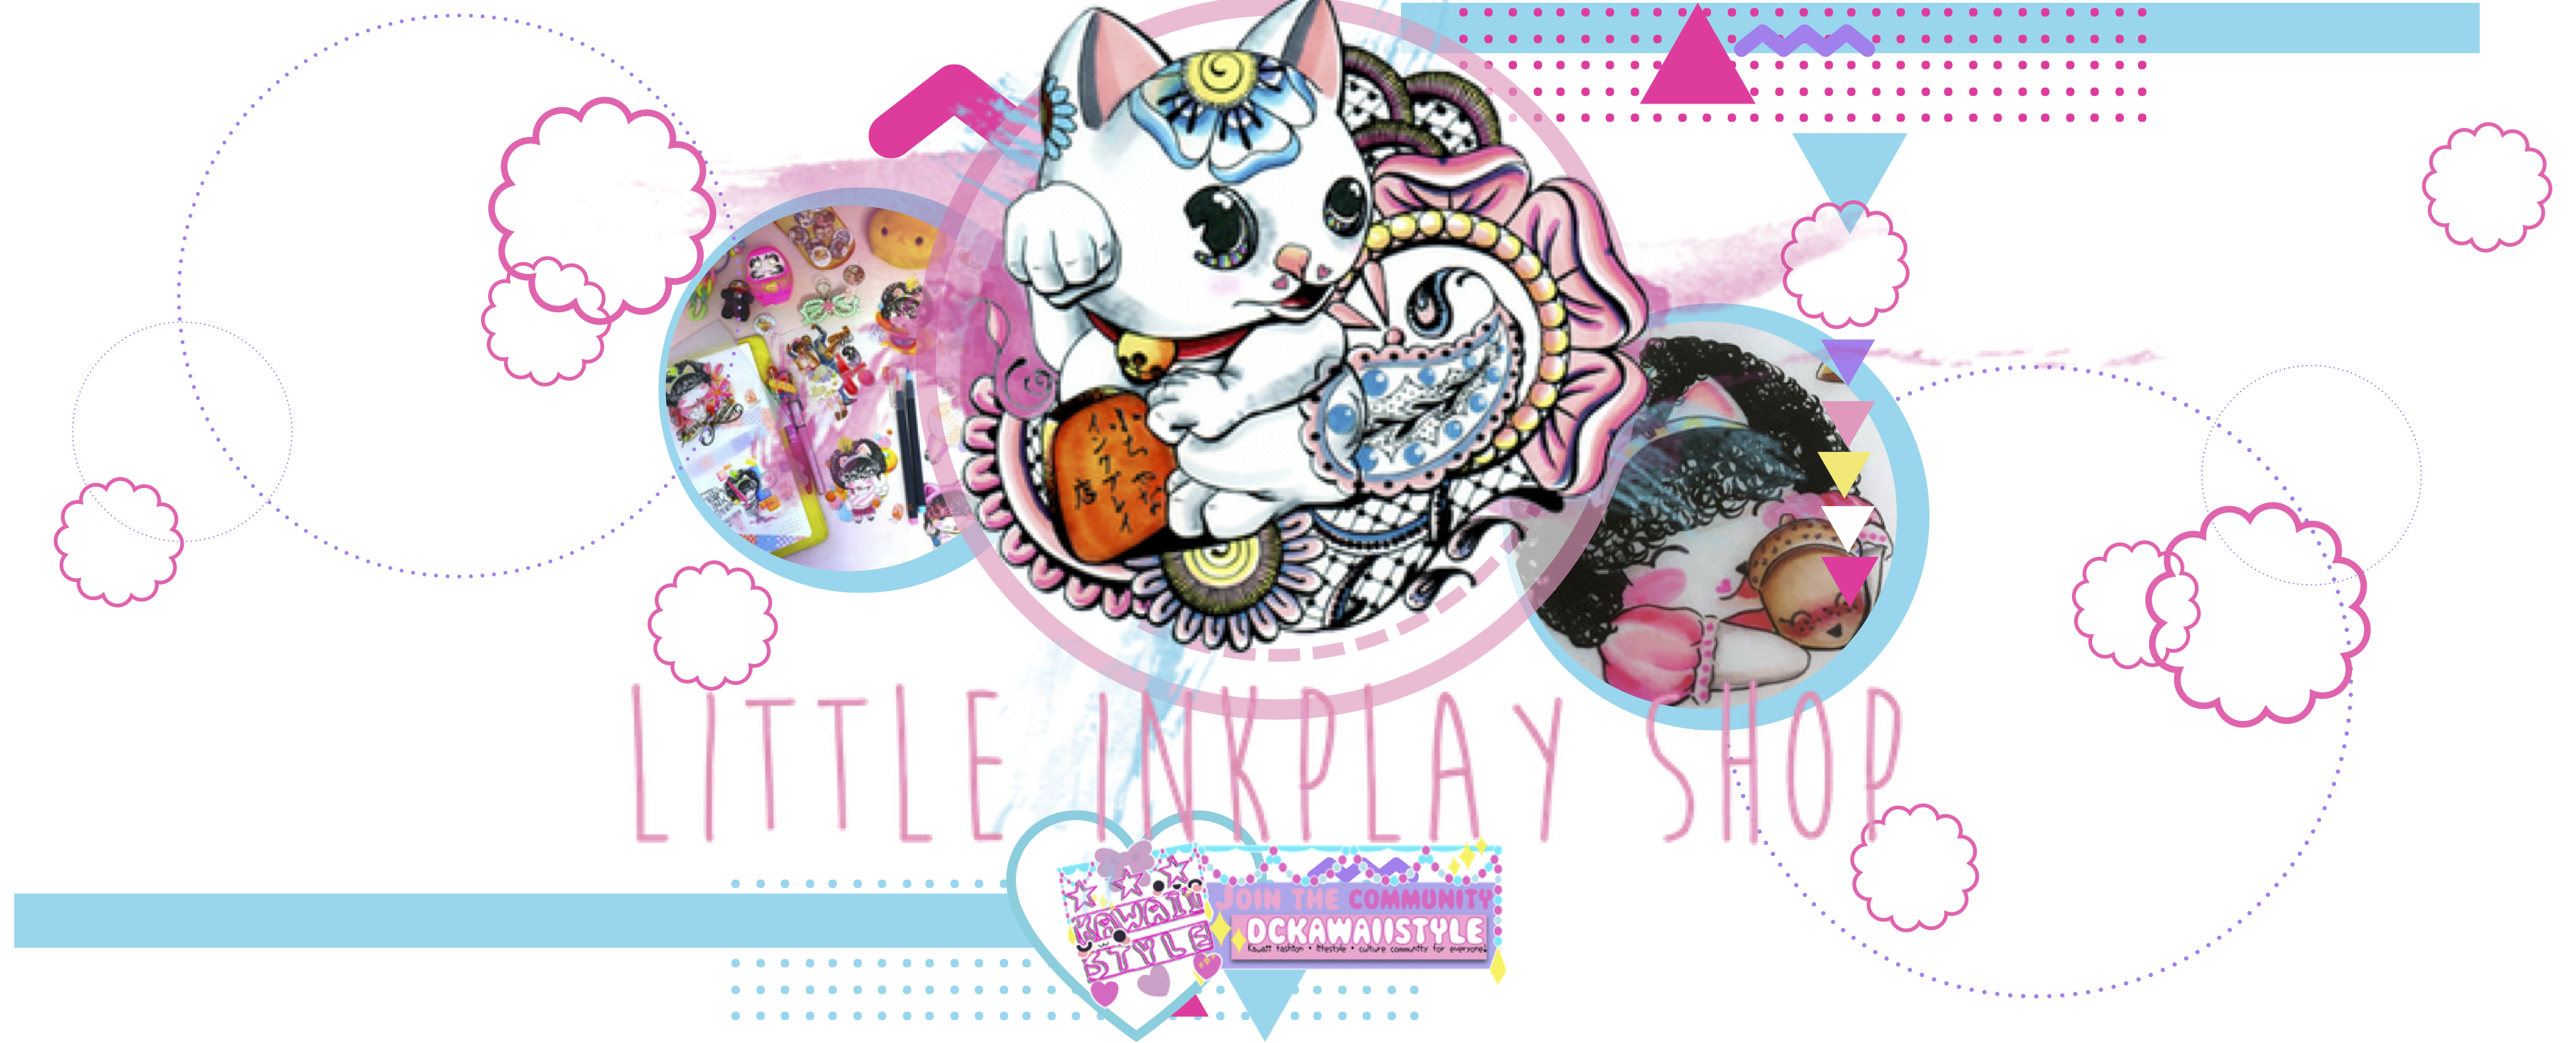 Little INKPLAY Shop